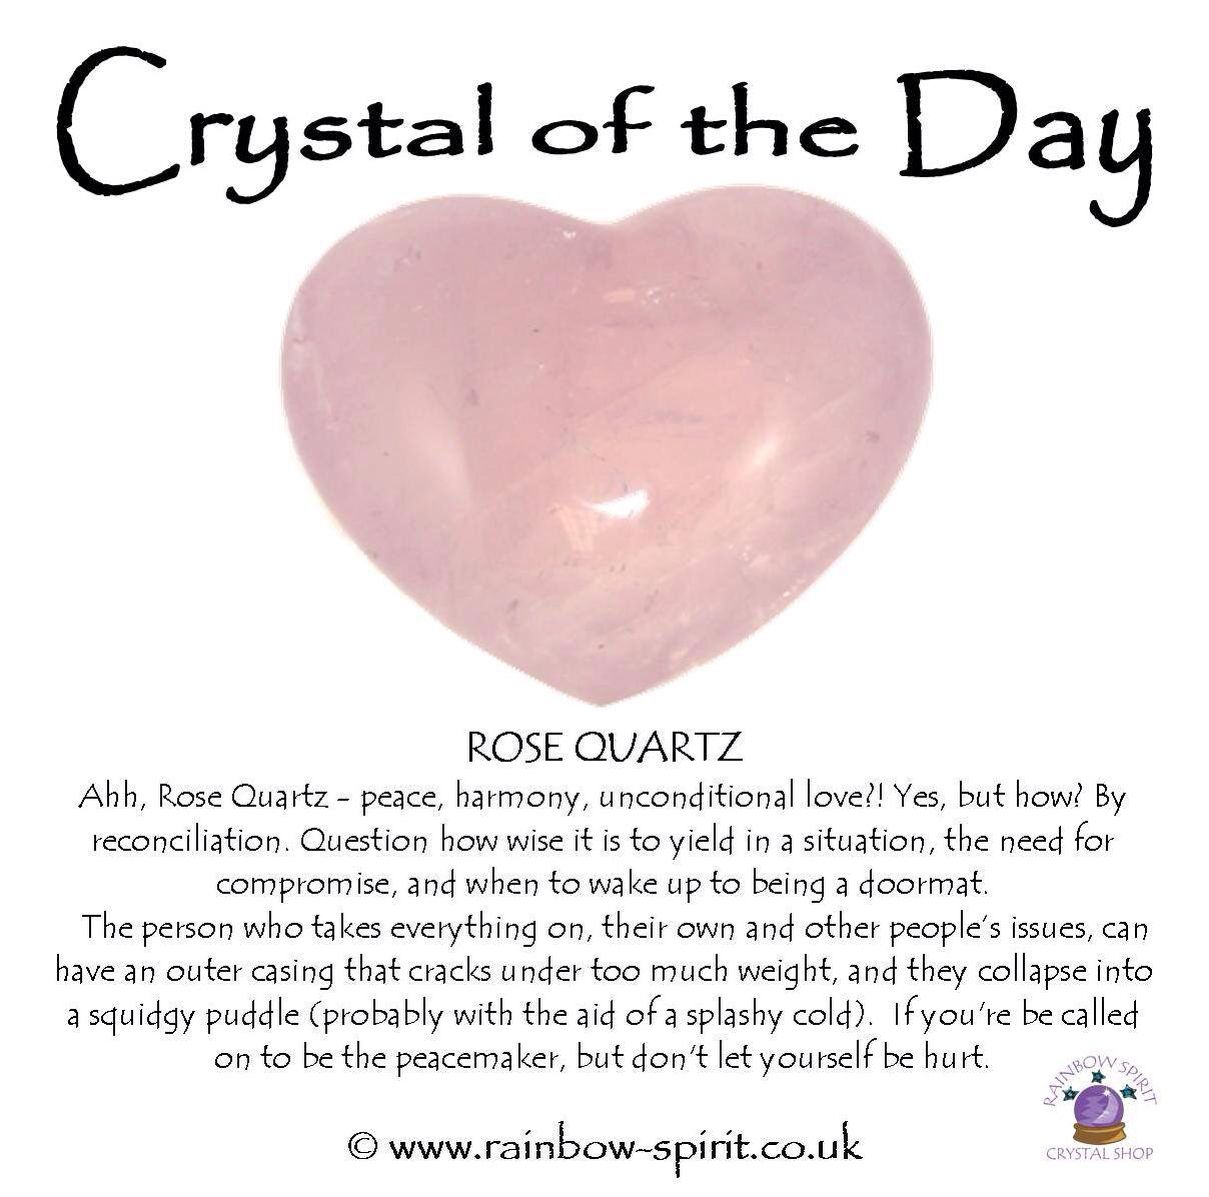 Crystal of the Day Rose Quartz, unconditional love based